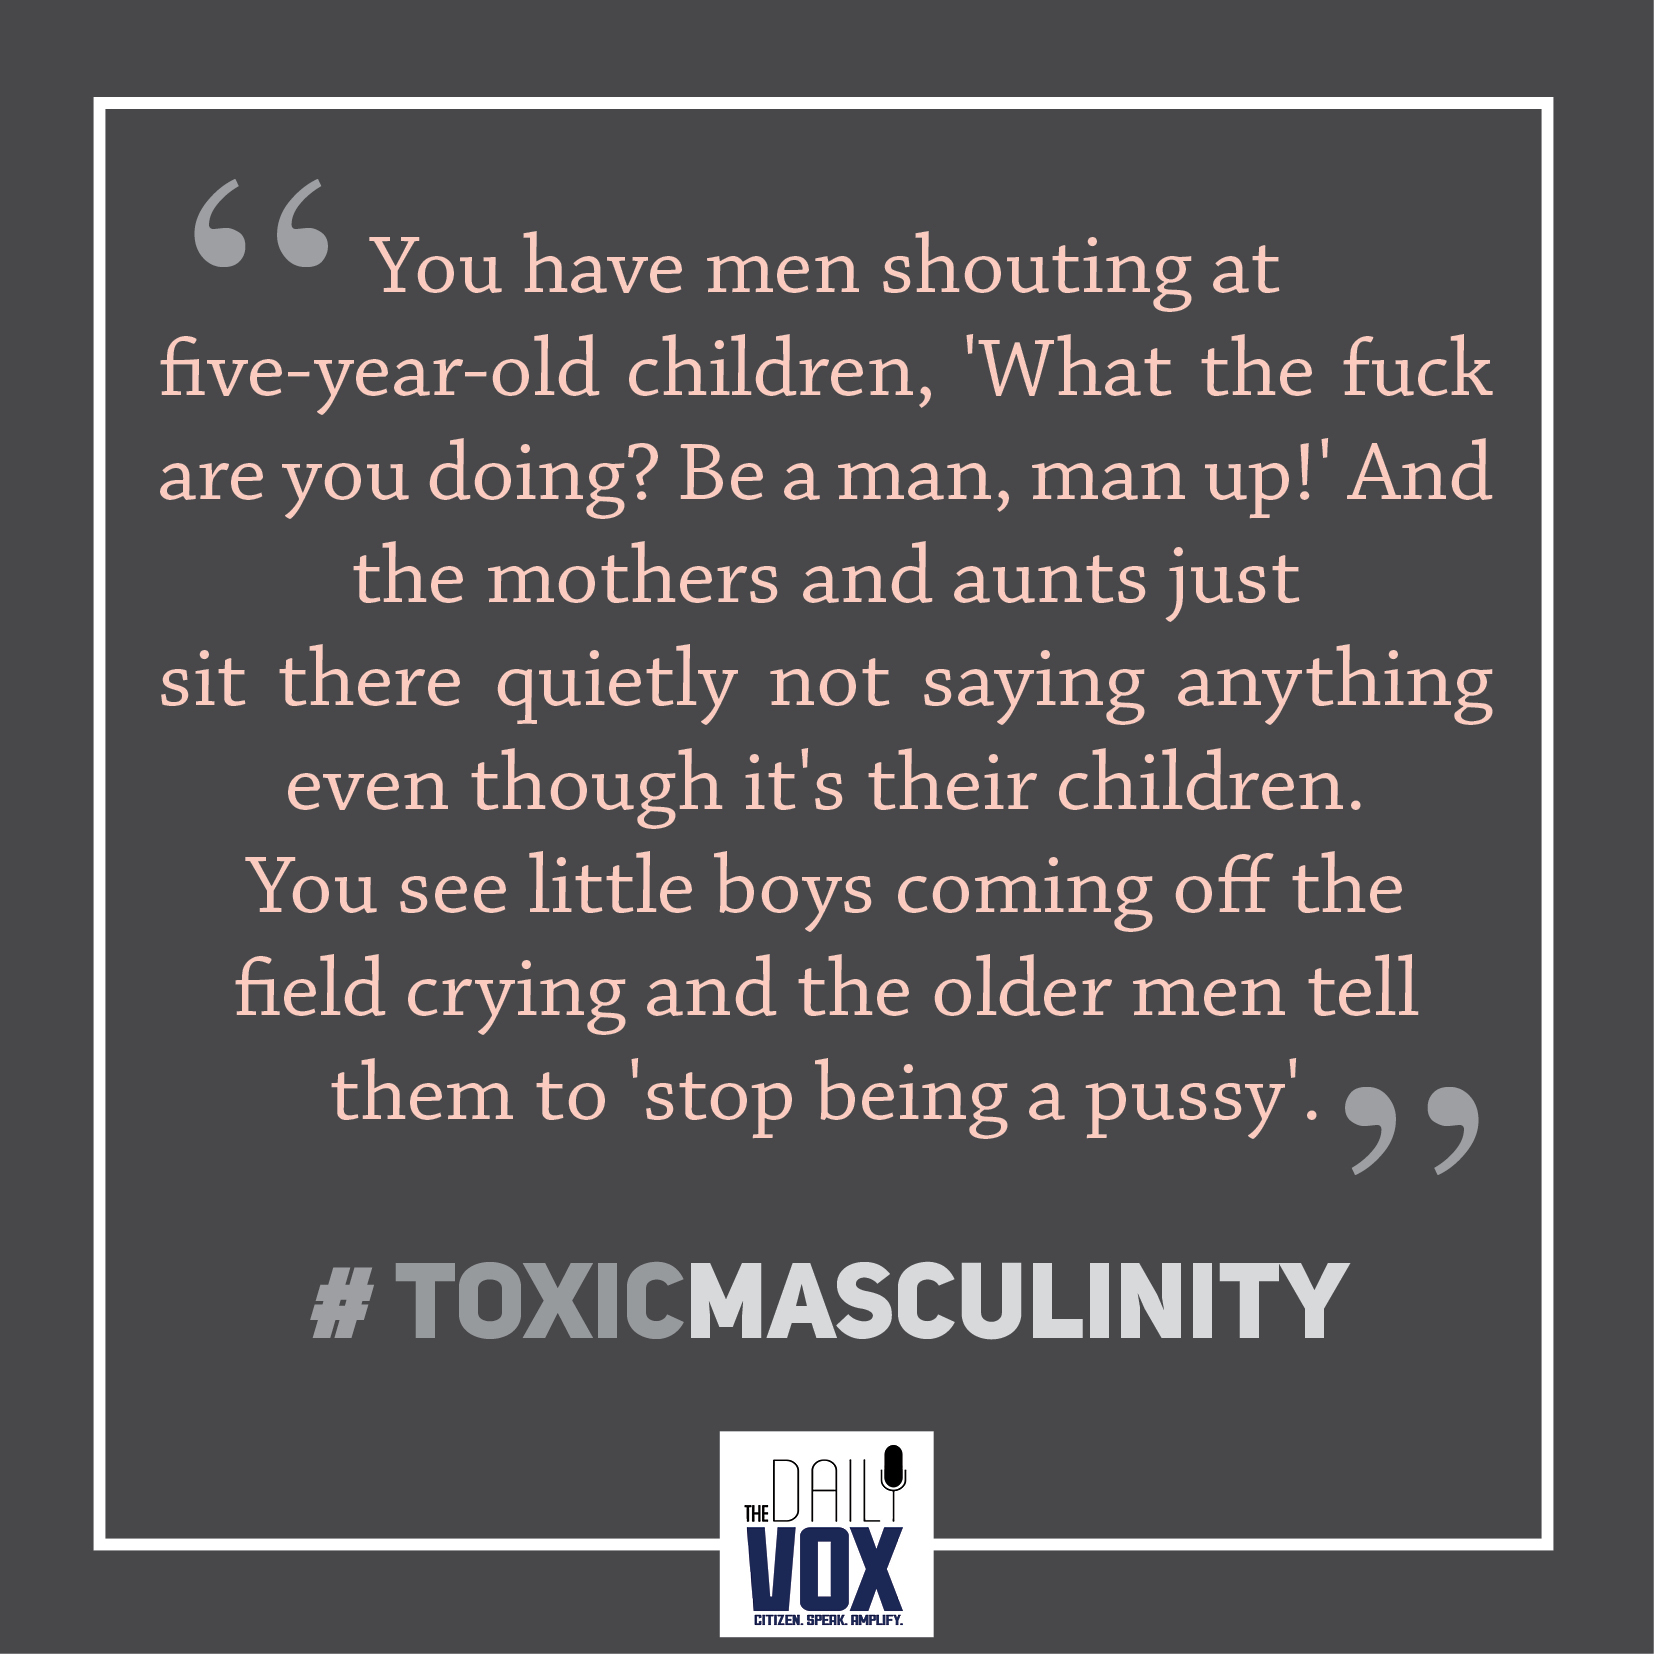 toxic-masculinity-smc-for-story-1